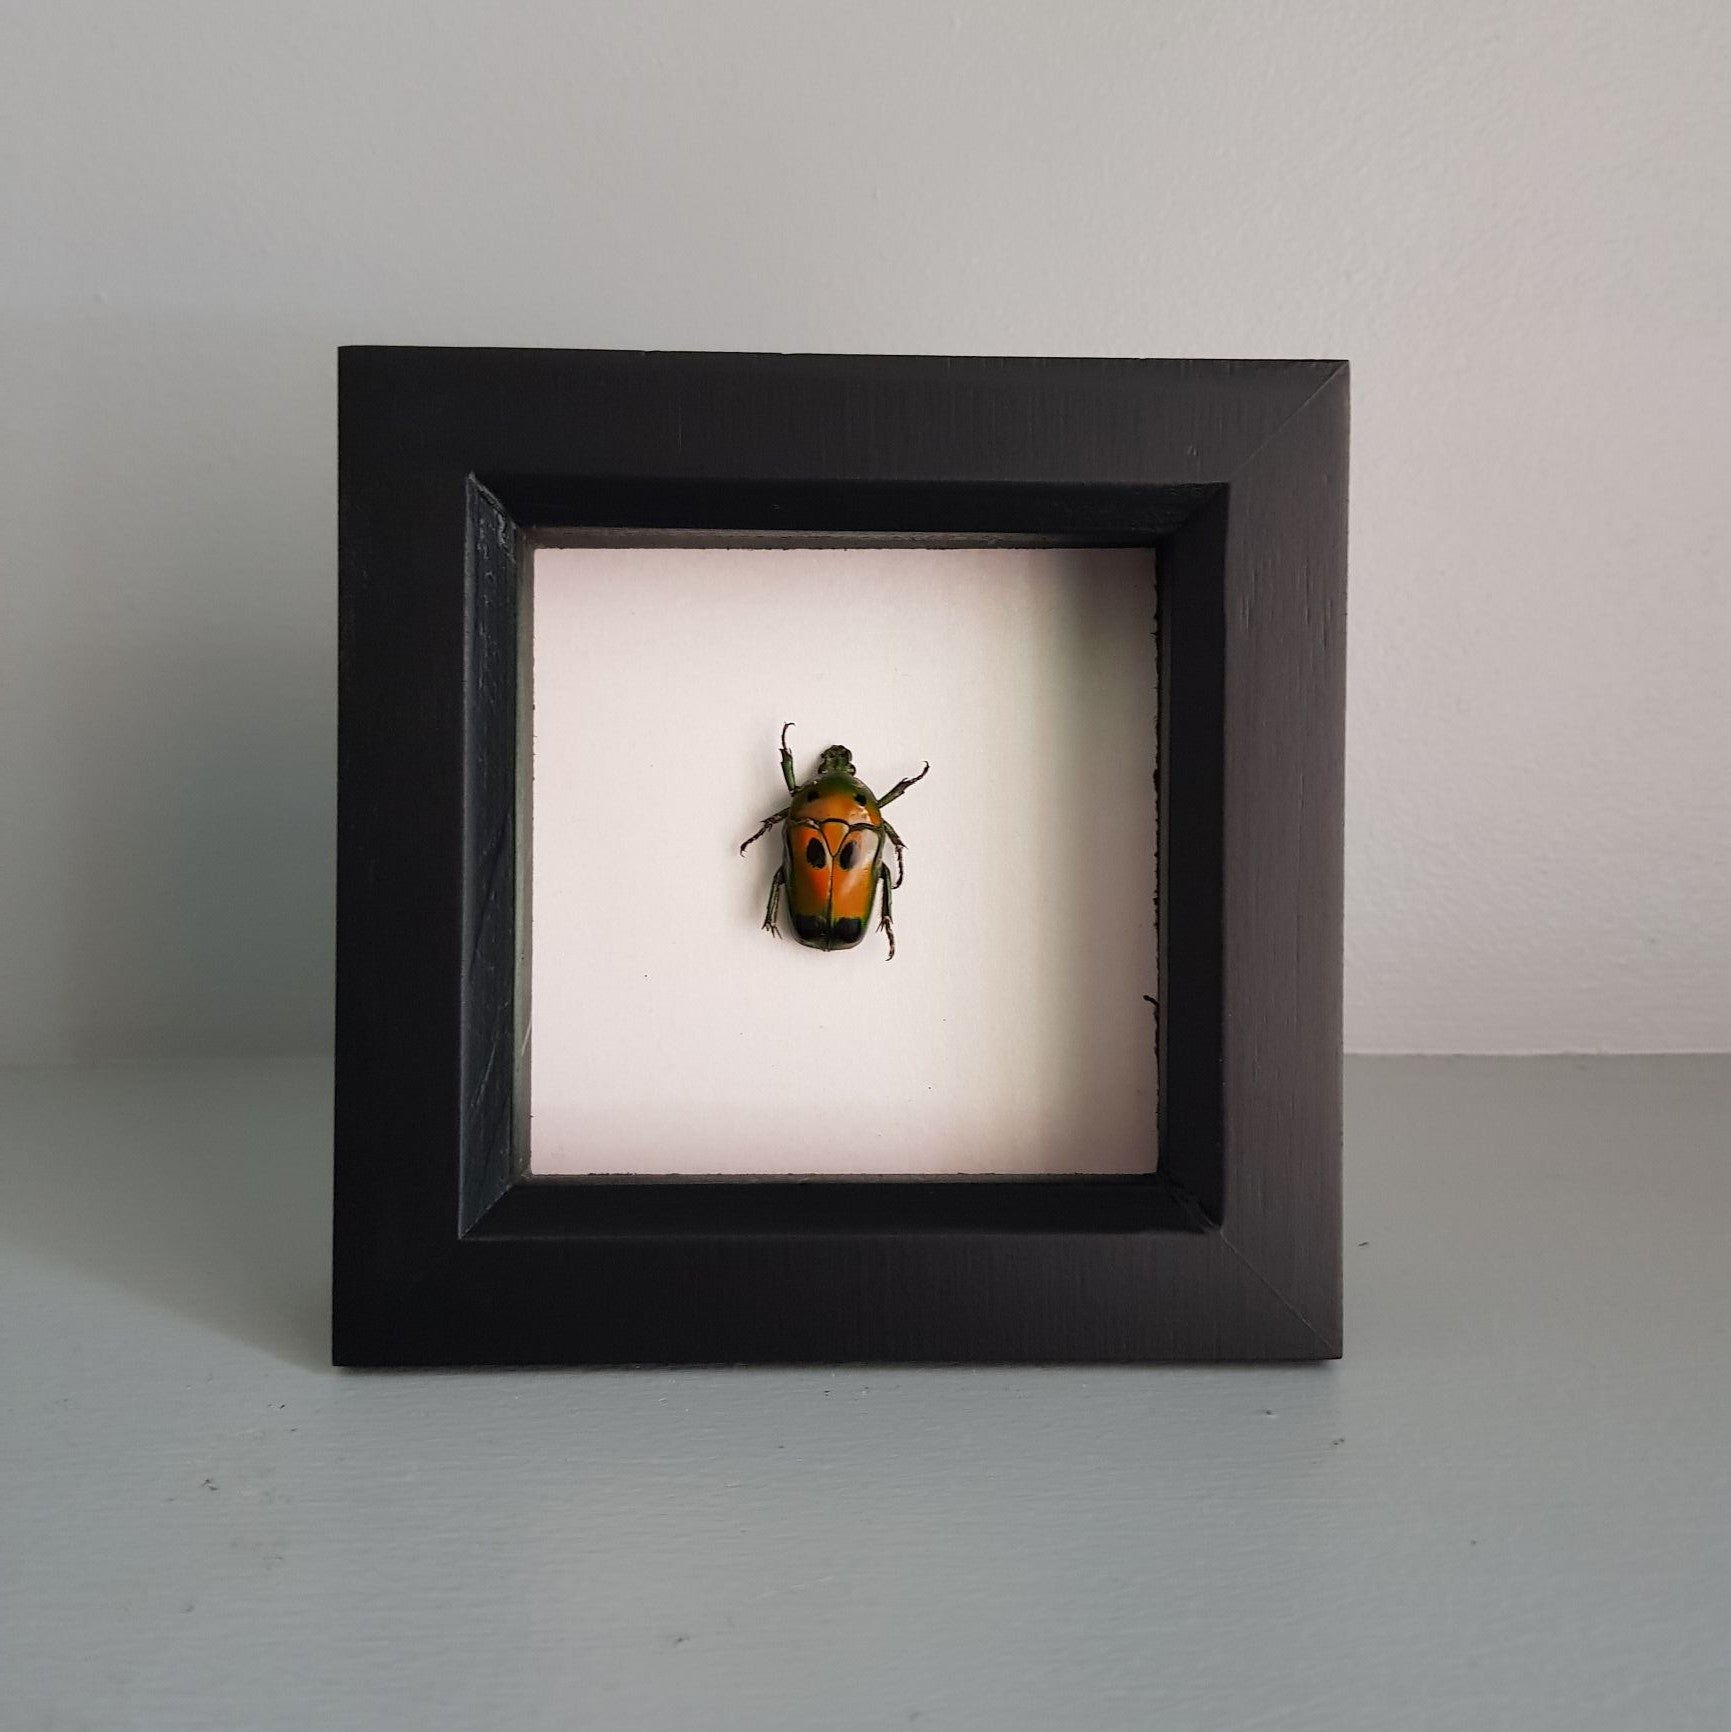 gemmas-curiosity-shop - Ischiopsopha - Gemma's Curiosity Shop - Beetle